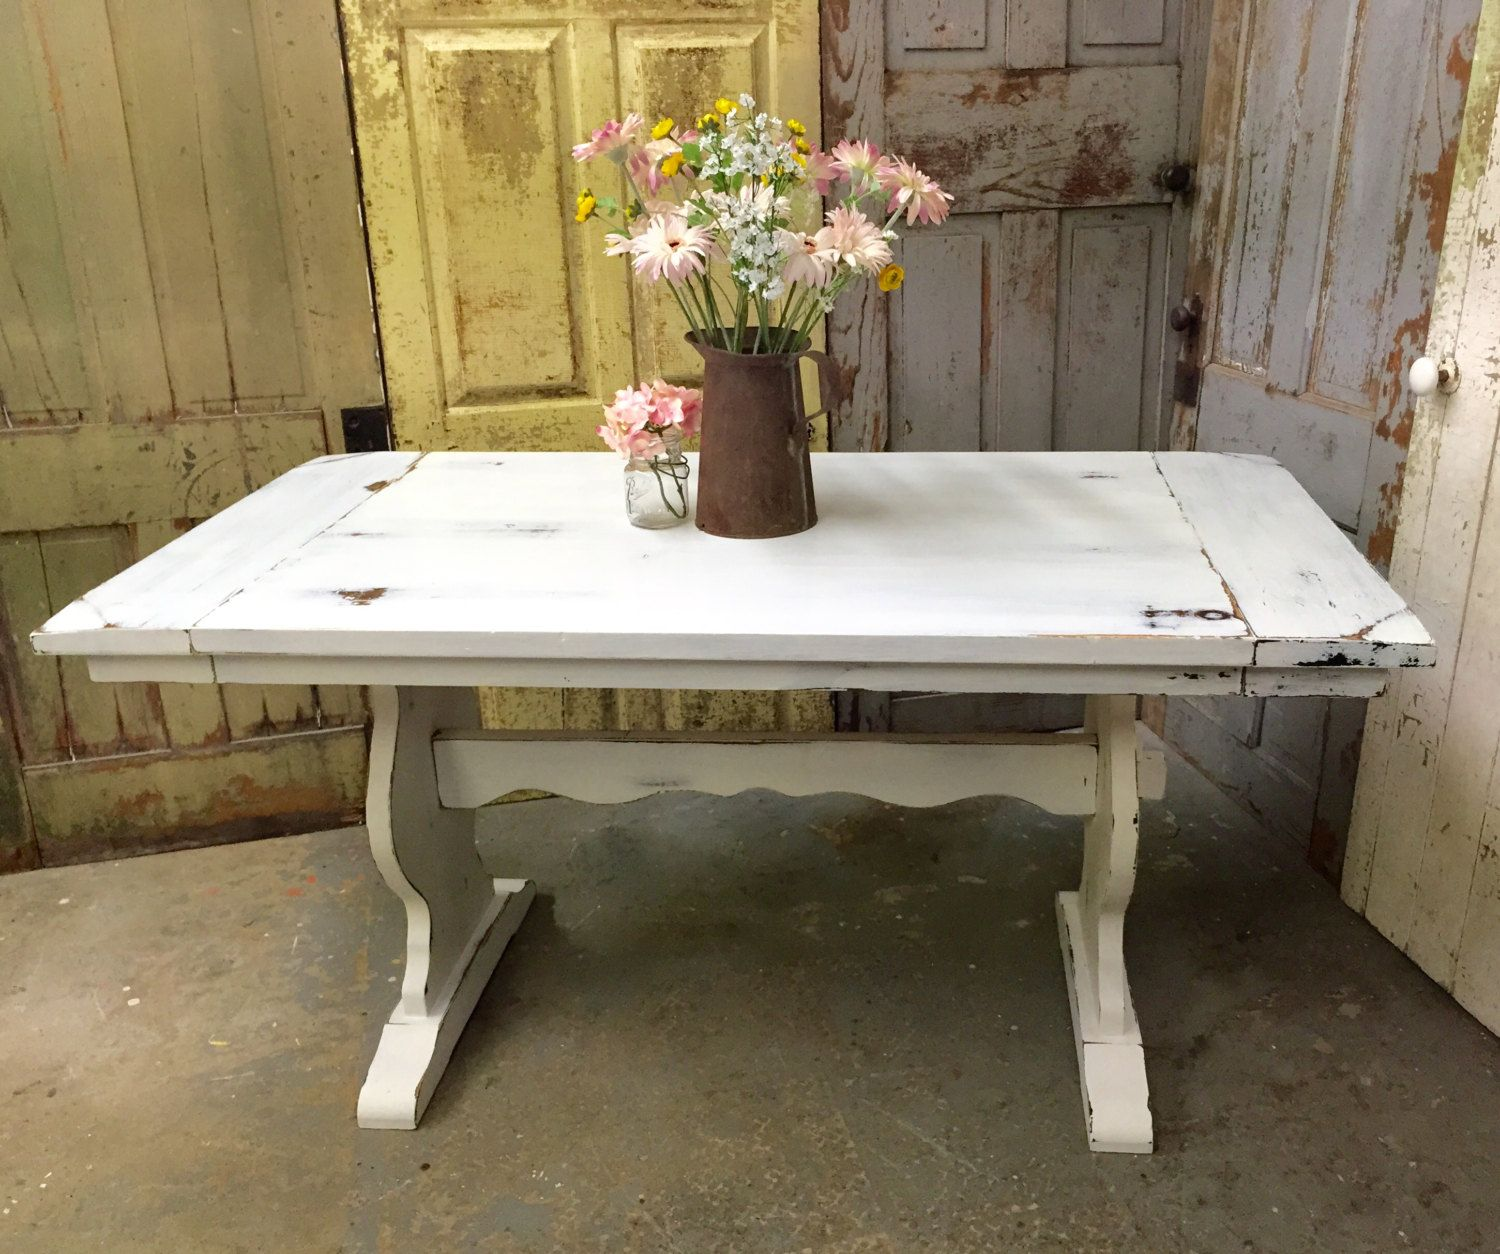 rustic kitchen table White Kitchen Table Rustic Dining Room Table Painted Furniture Beach Cottage Furniture